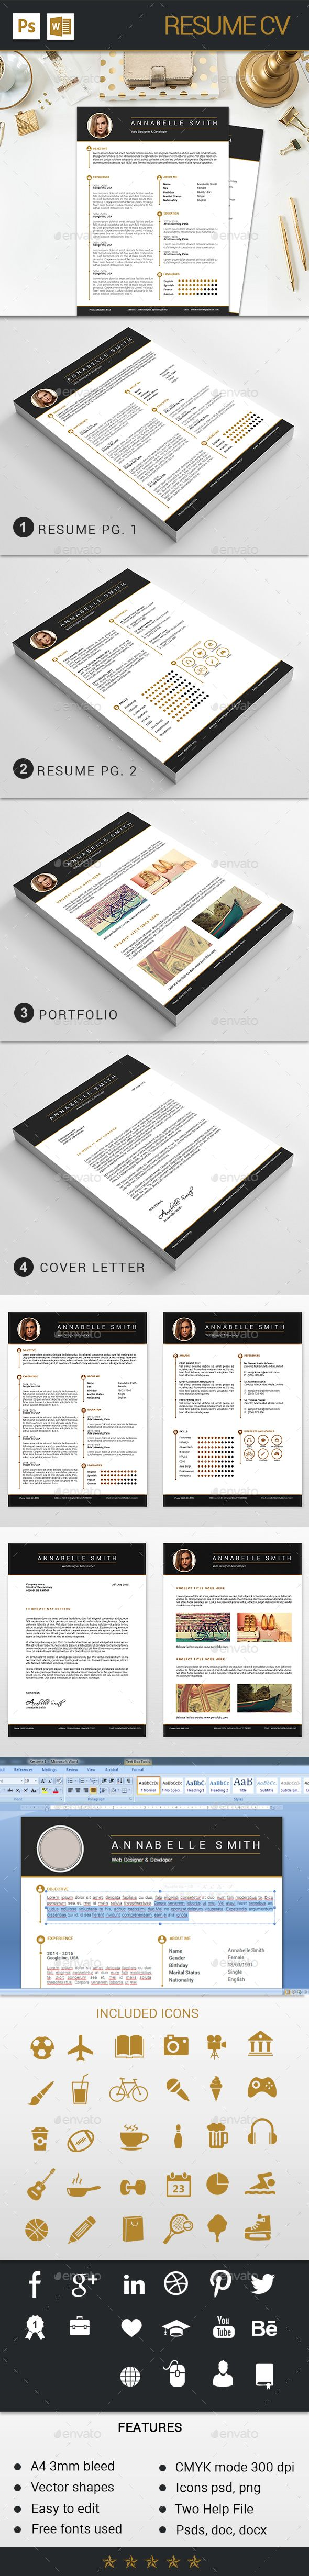 Best Resumes Images On   Resume Templates Cv